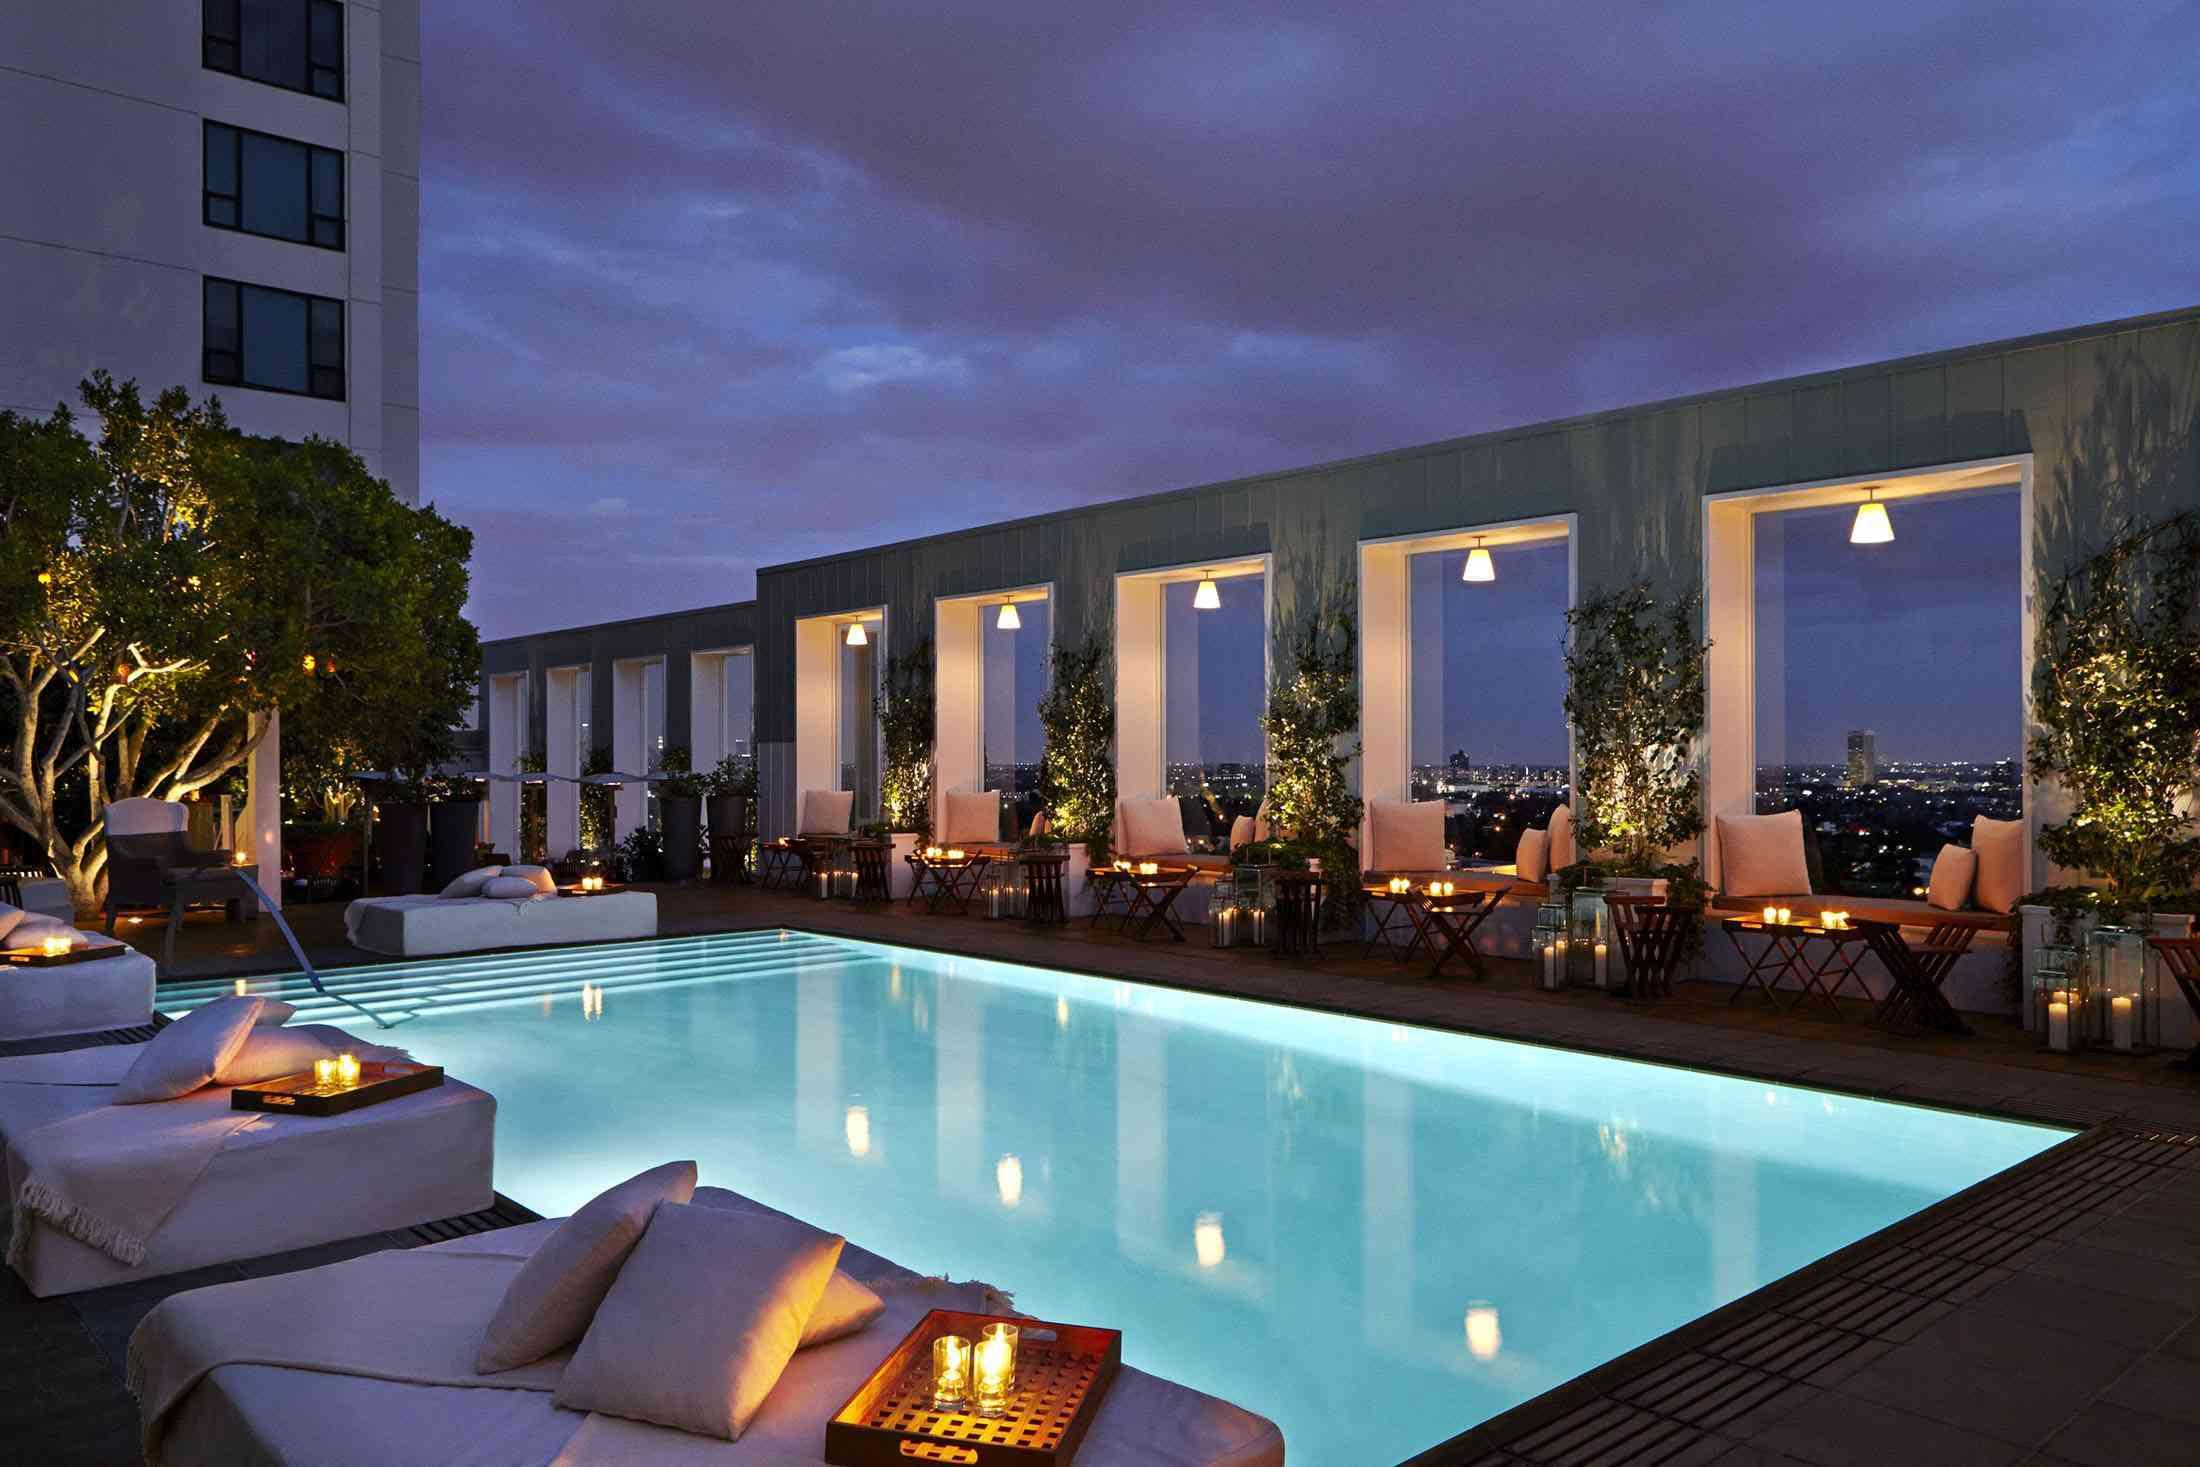 Skybar rooftop pool at night